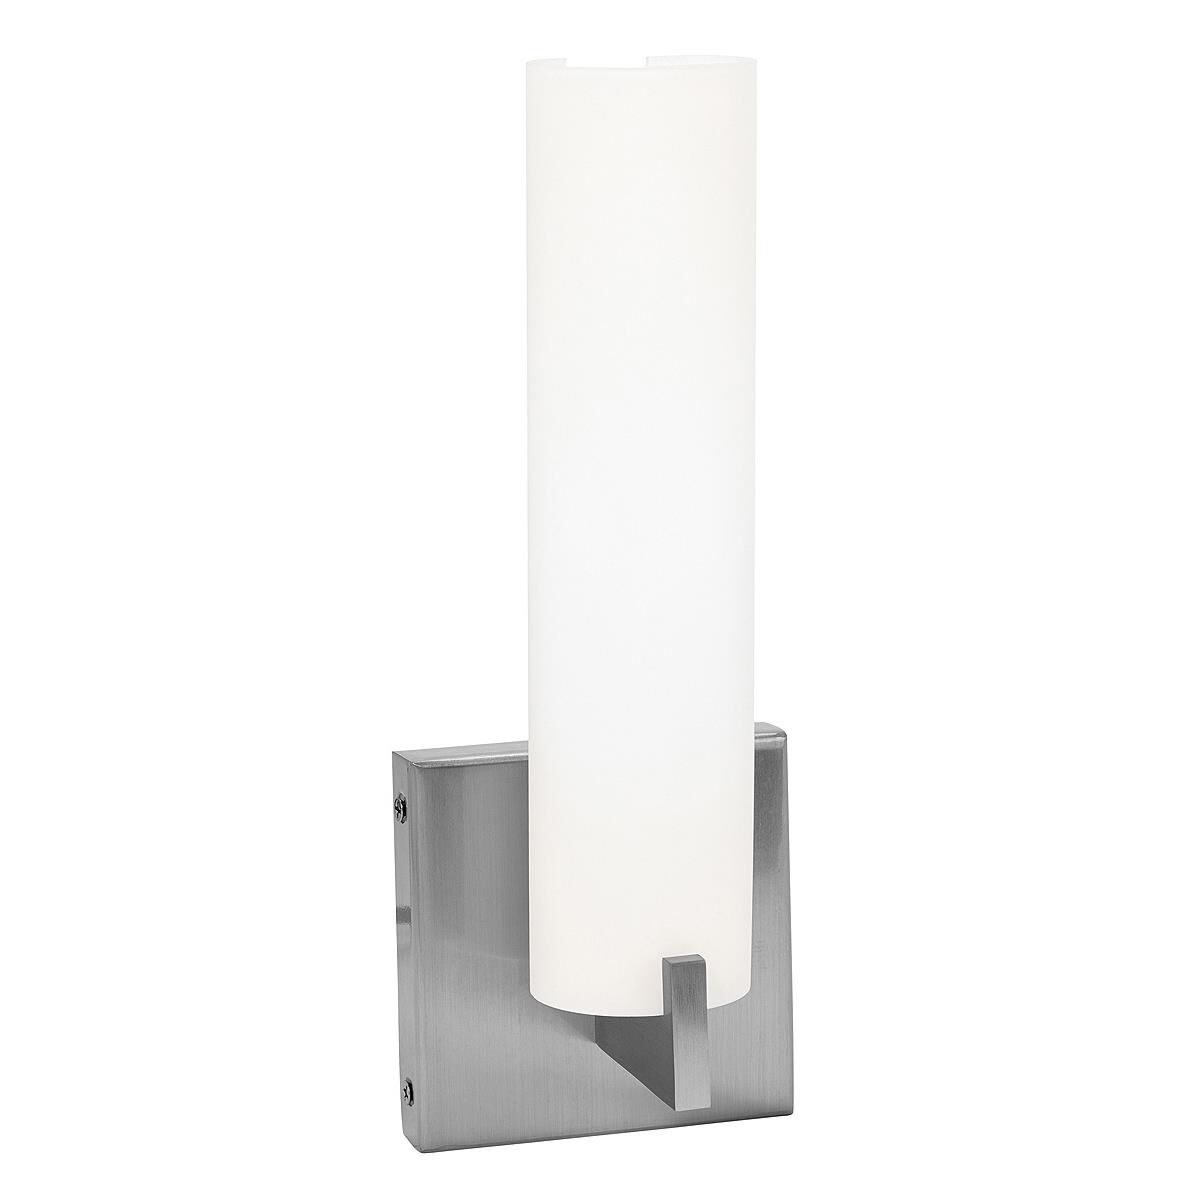 Access Lighting Oracle 11 Inch Wall Sconce Oracle 50565 BSOPL Modern Contemporary